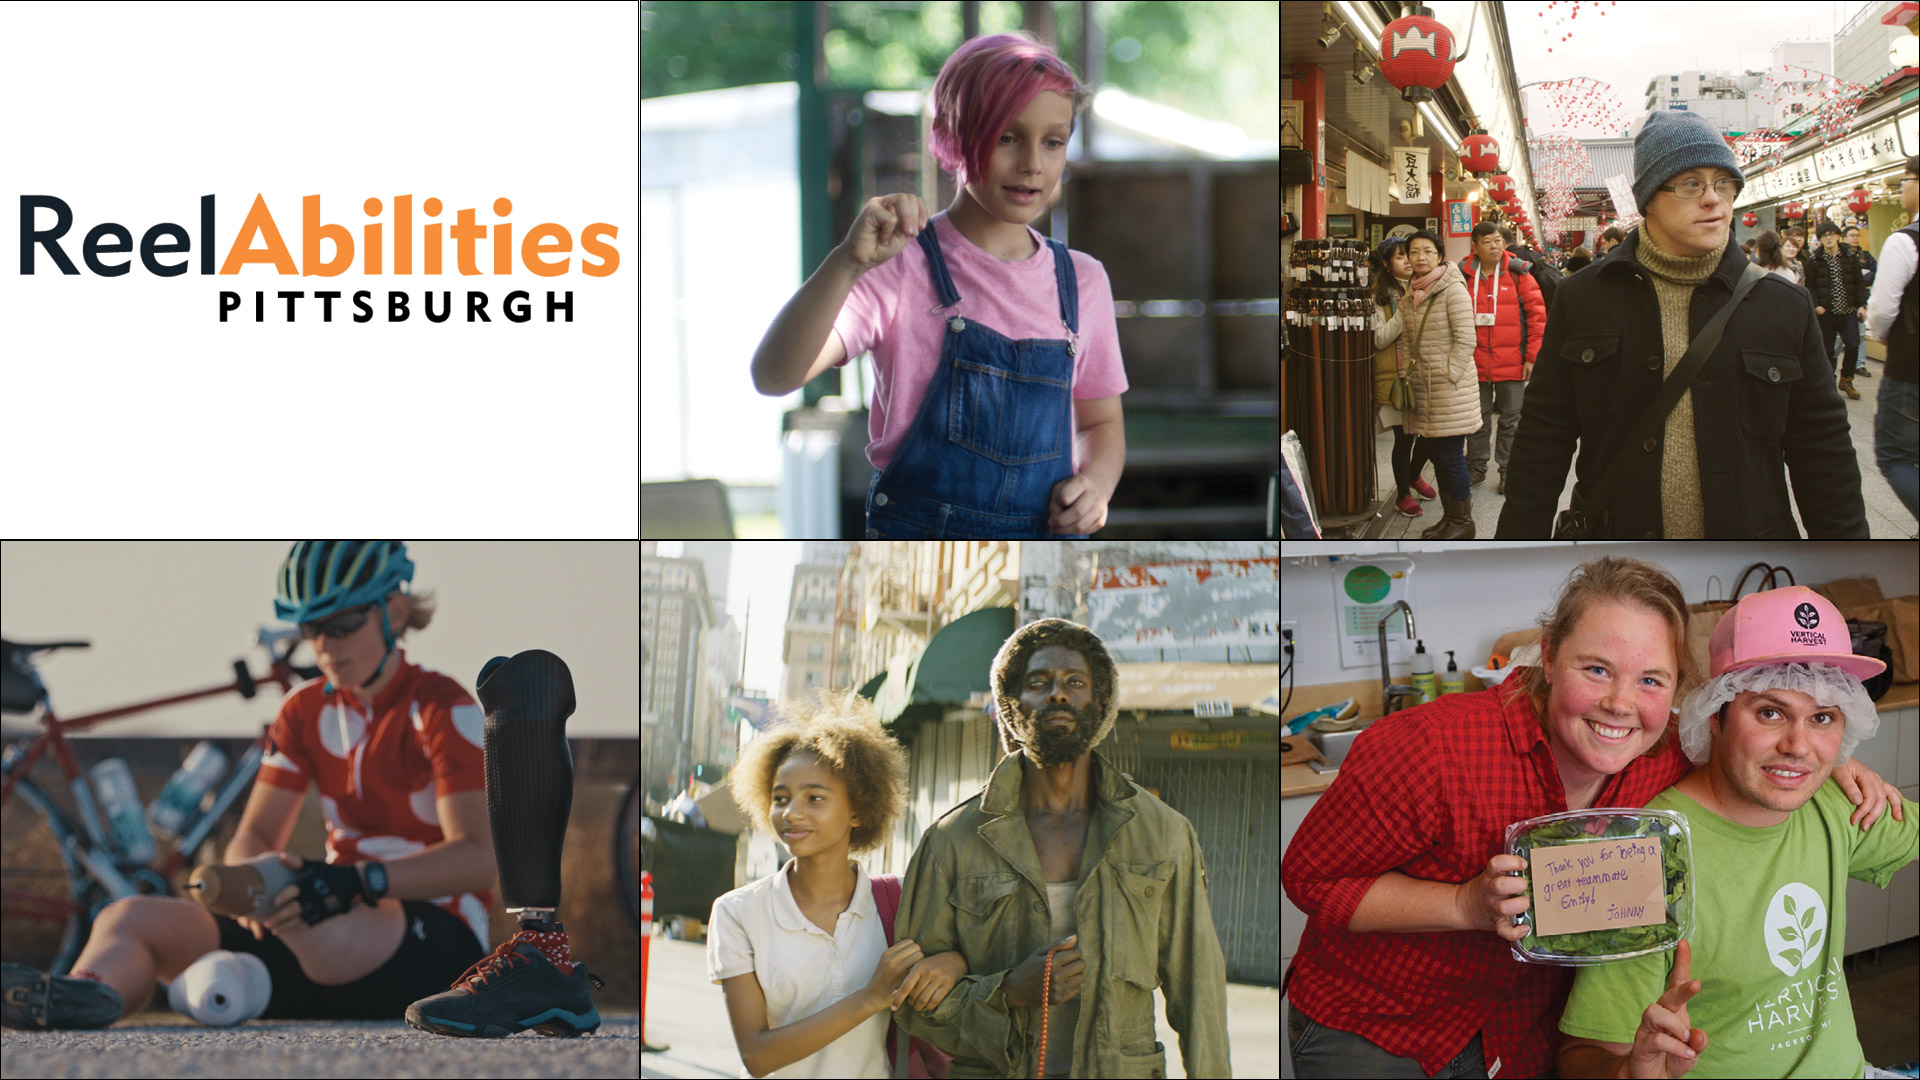 Reel Abilities Film Festival Image - photos from featured films